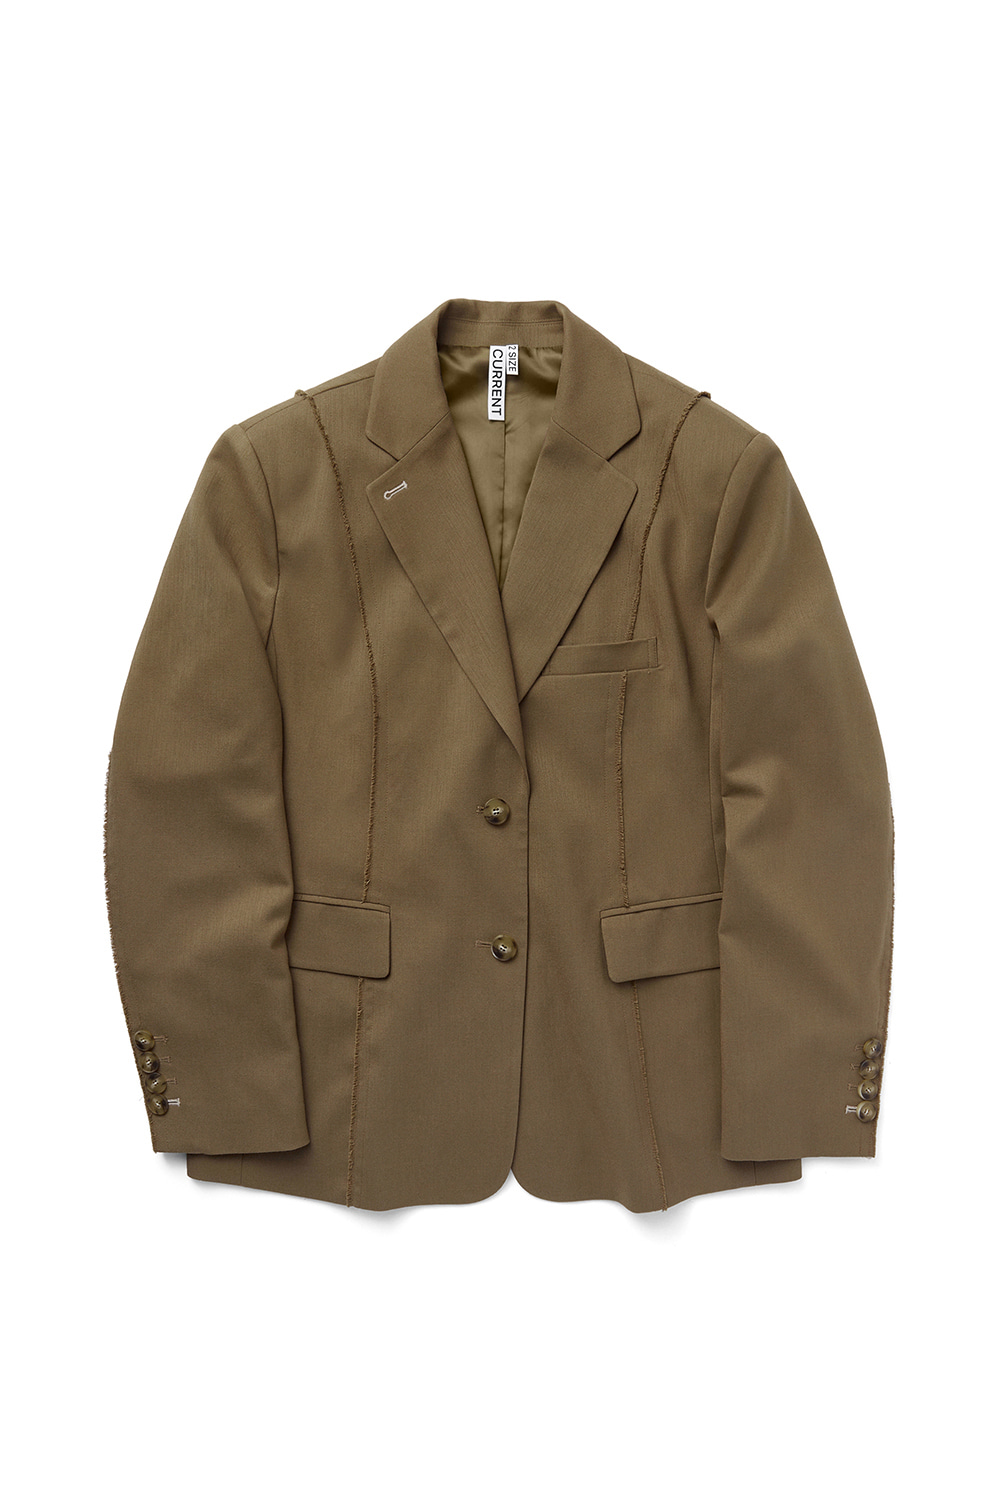 CUT OFF SINGLE BLAZER KS [CAMEL]